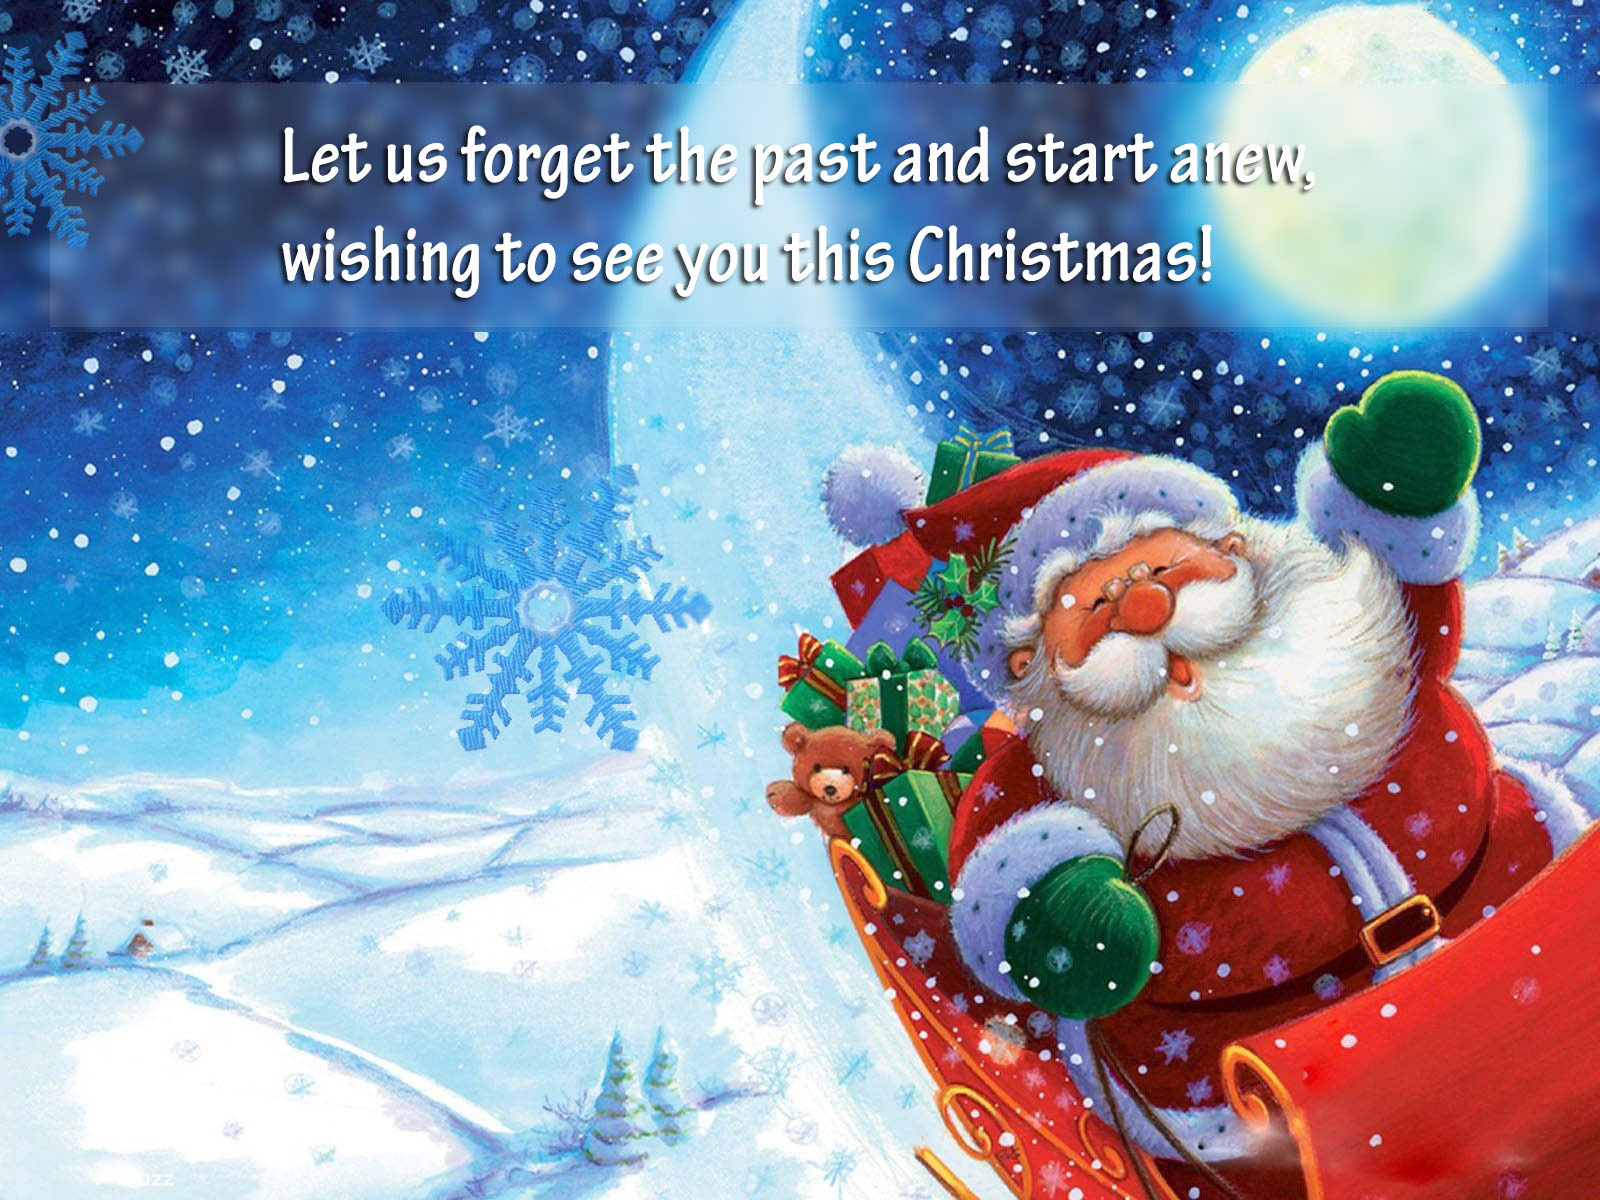 Merry Christmas 2018 Quotes for Cards